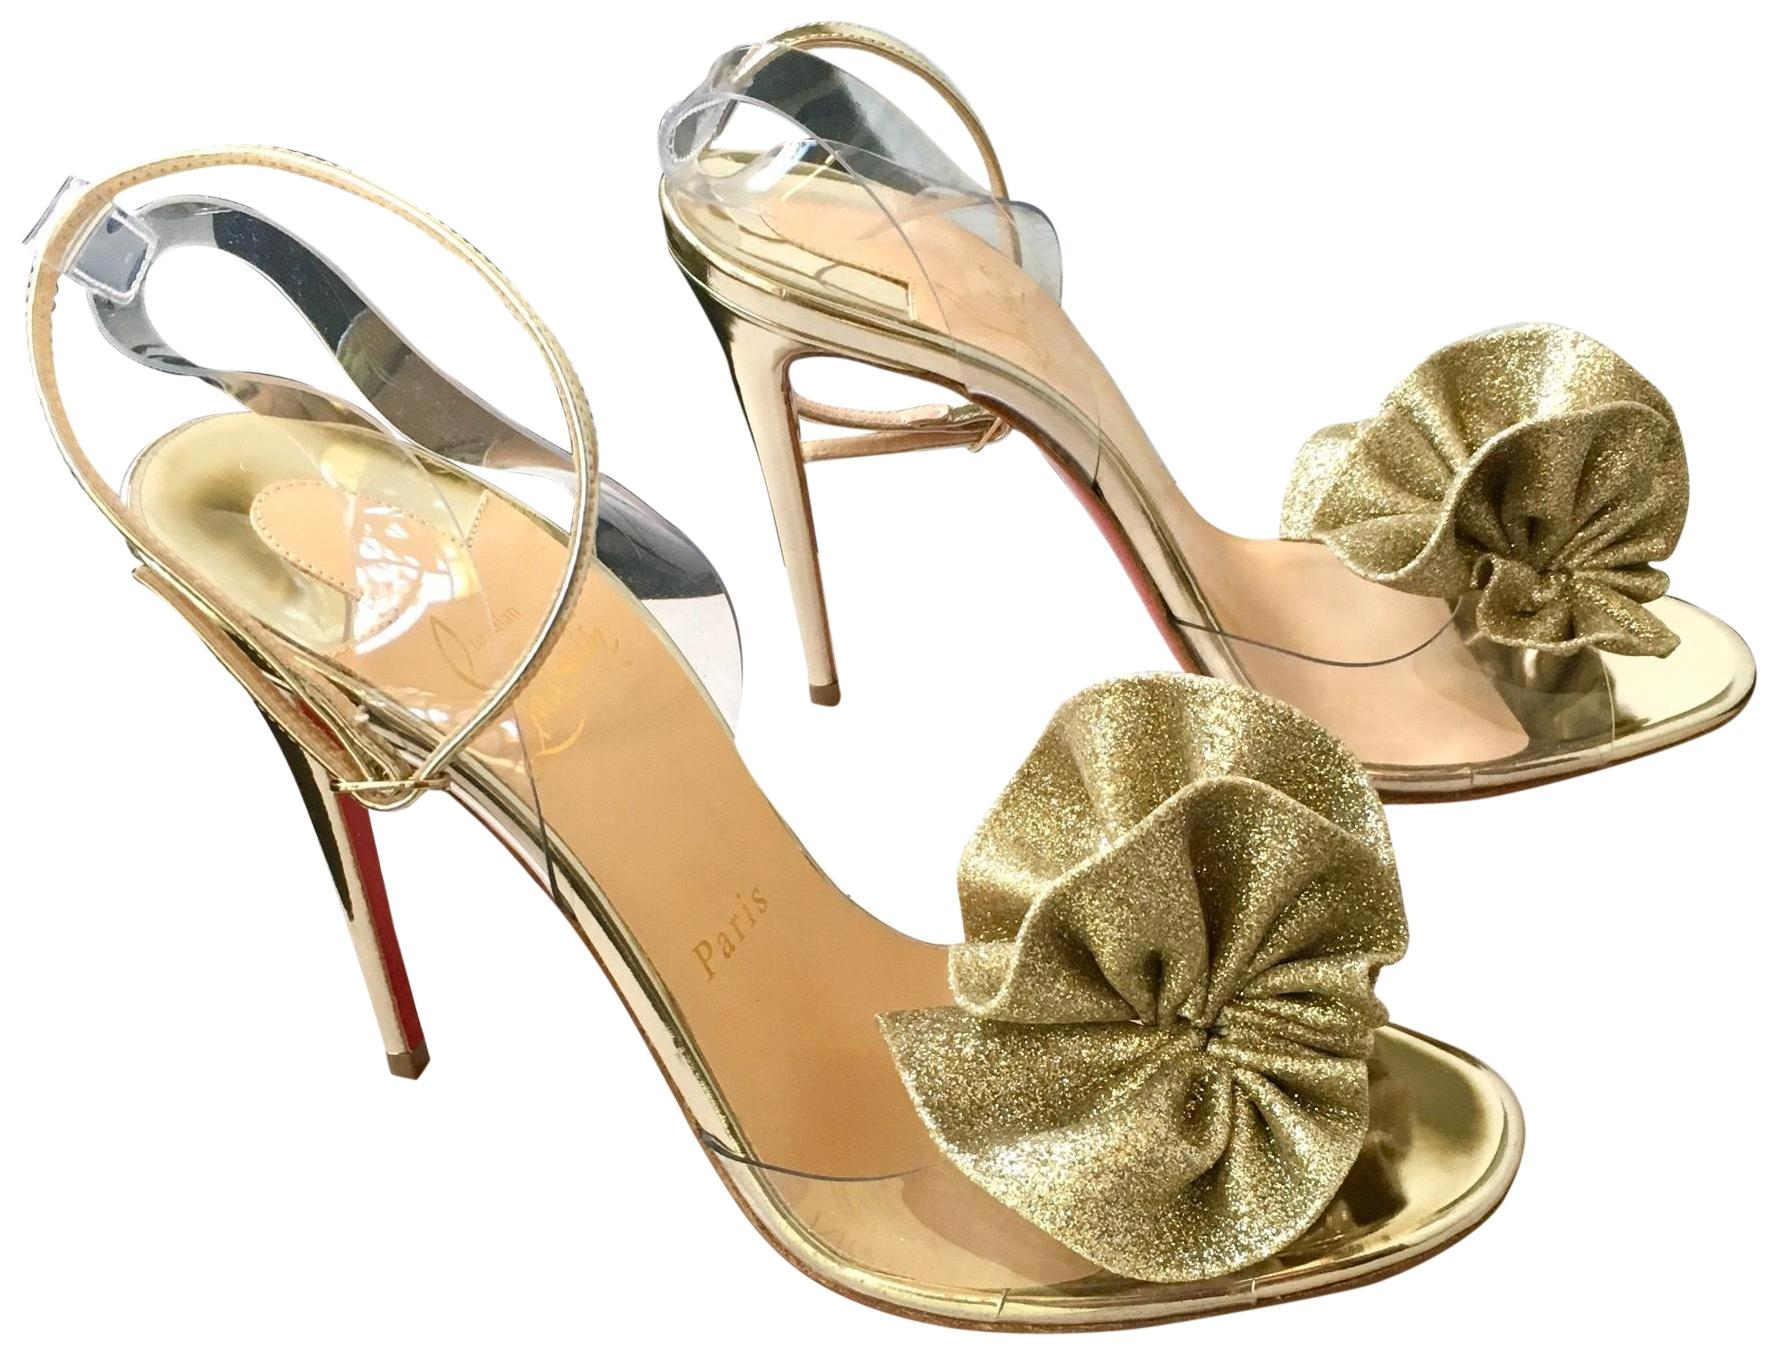 7933b30a595a Christian Louboutin Gold Gold Gold Fossiliza Strap Formal Shoes Size EU 38  (Approx. US 8) Regular (M